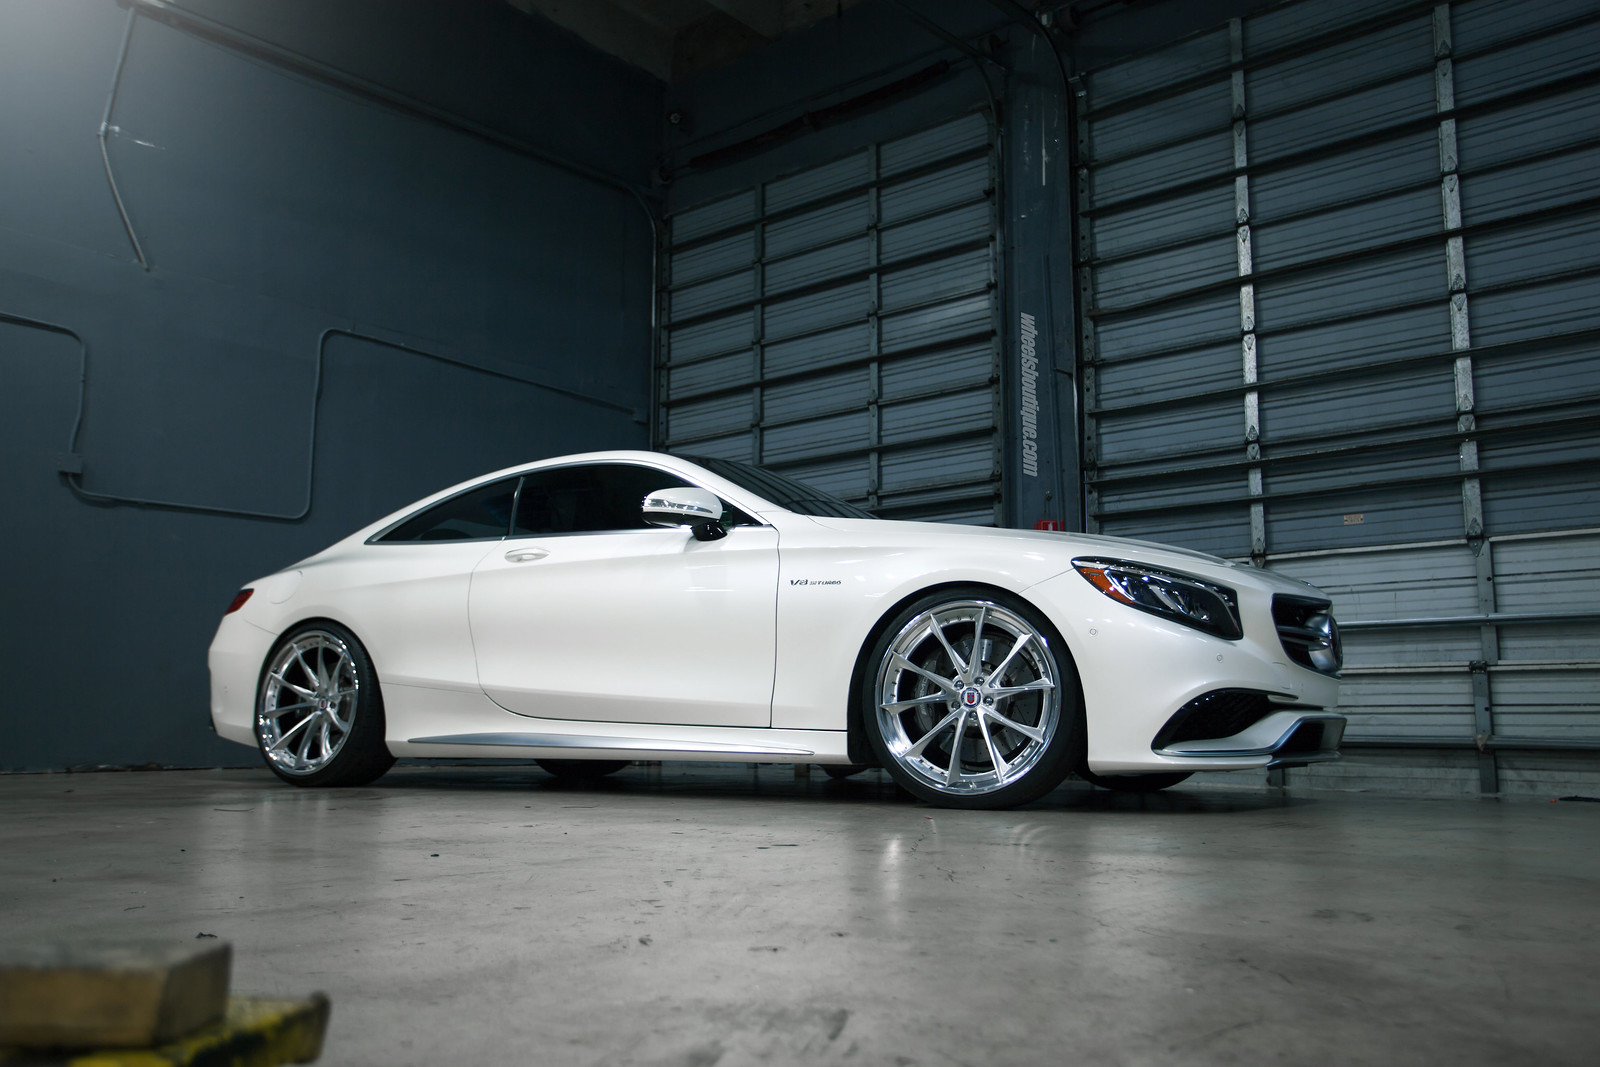 Big body coupe mercedes benz s63 amg x hre s204 39 s by for R h mercedes benz